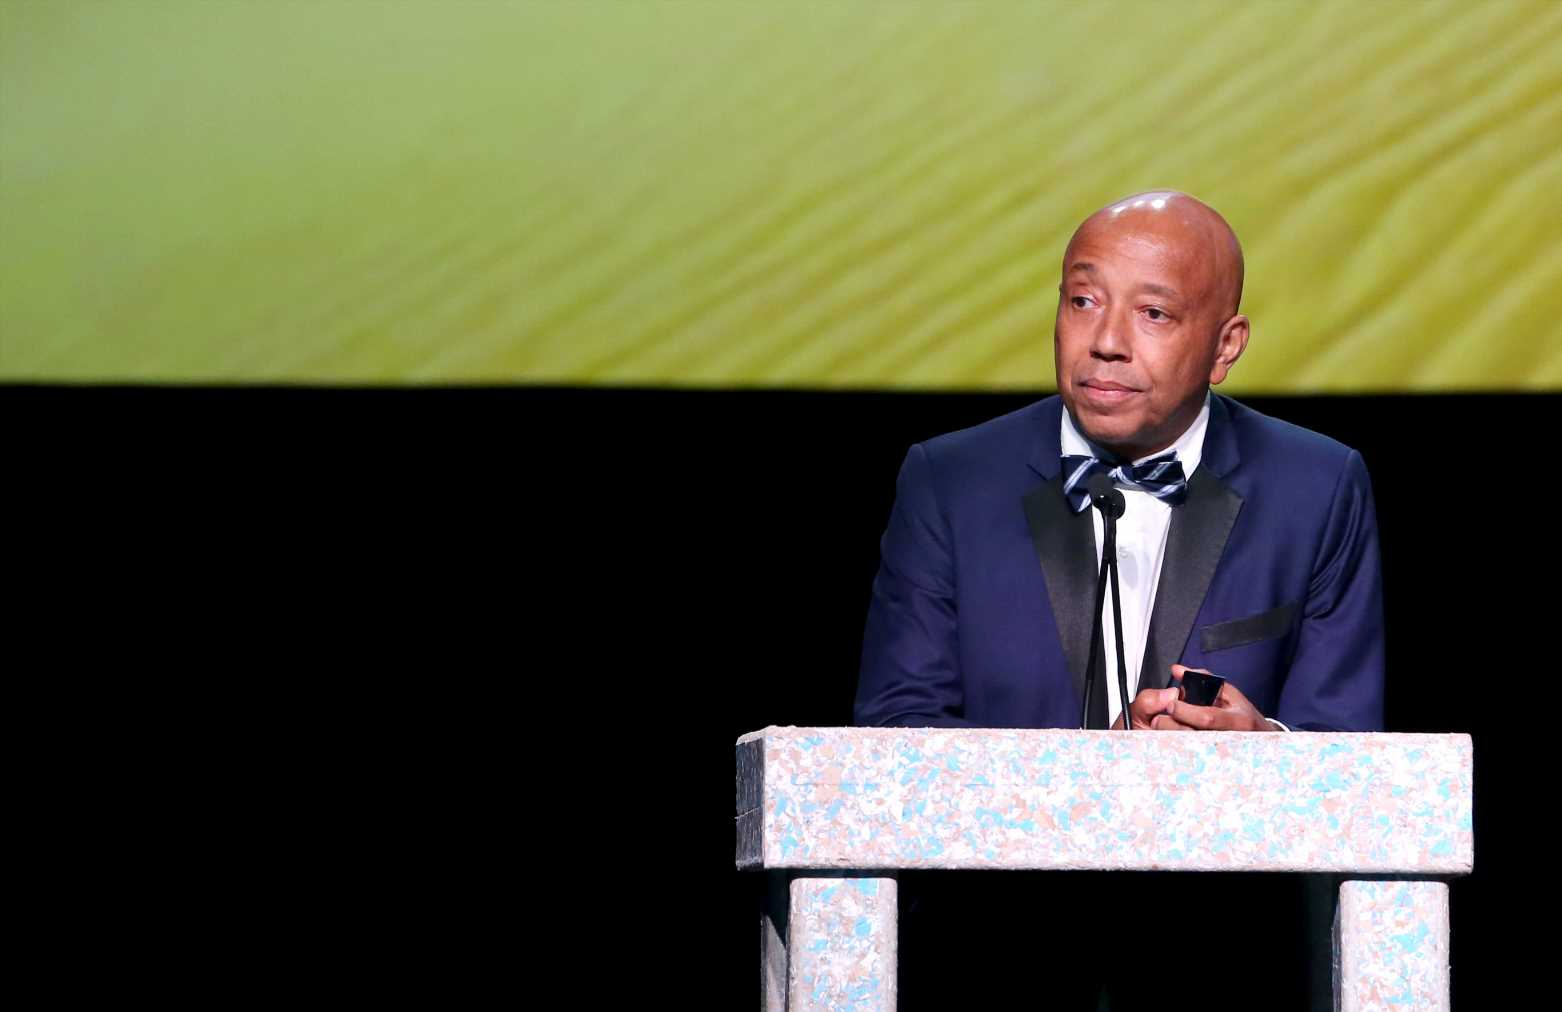 'Every Bad Stereotype': Inside Russell Simmons' Shuttered All Def Digital